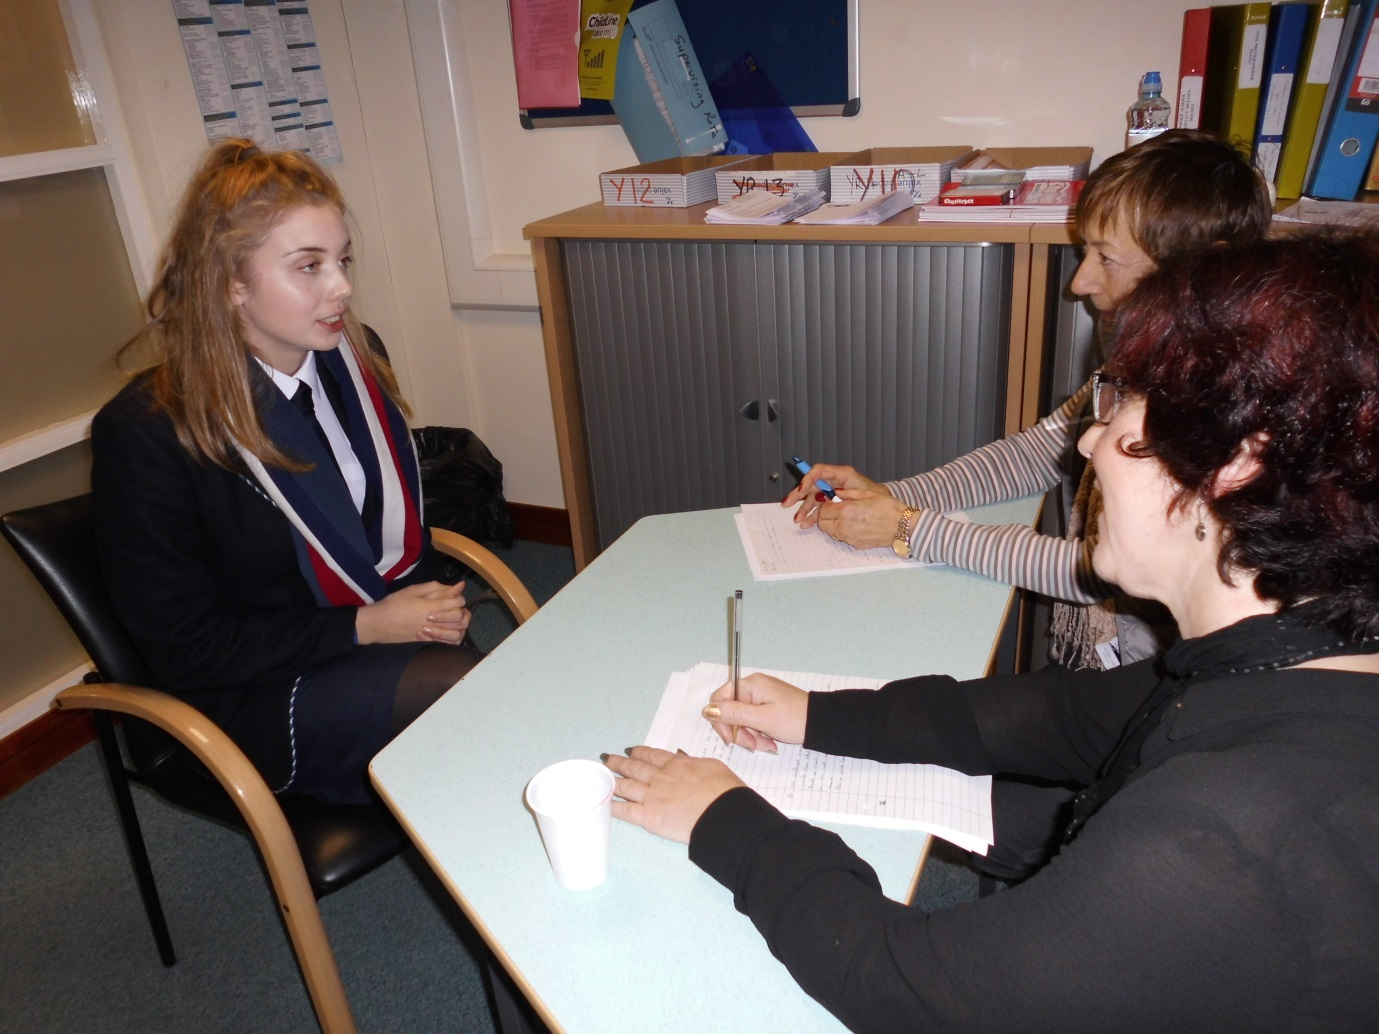 RHS Careers Department was also delighted to help Anna Henry (Glenlola Collegiate) and support her application to study French and Spanish at Oxford University.